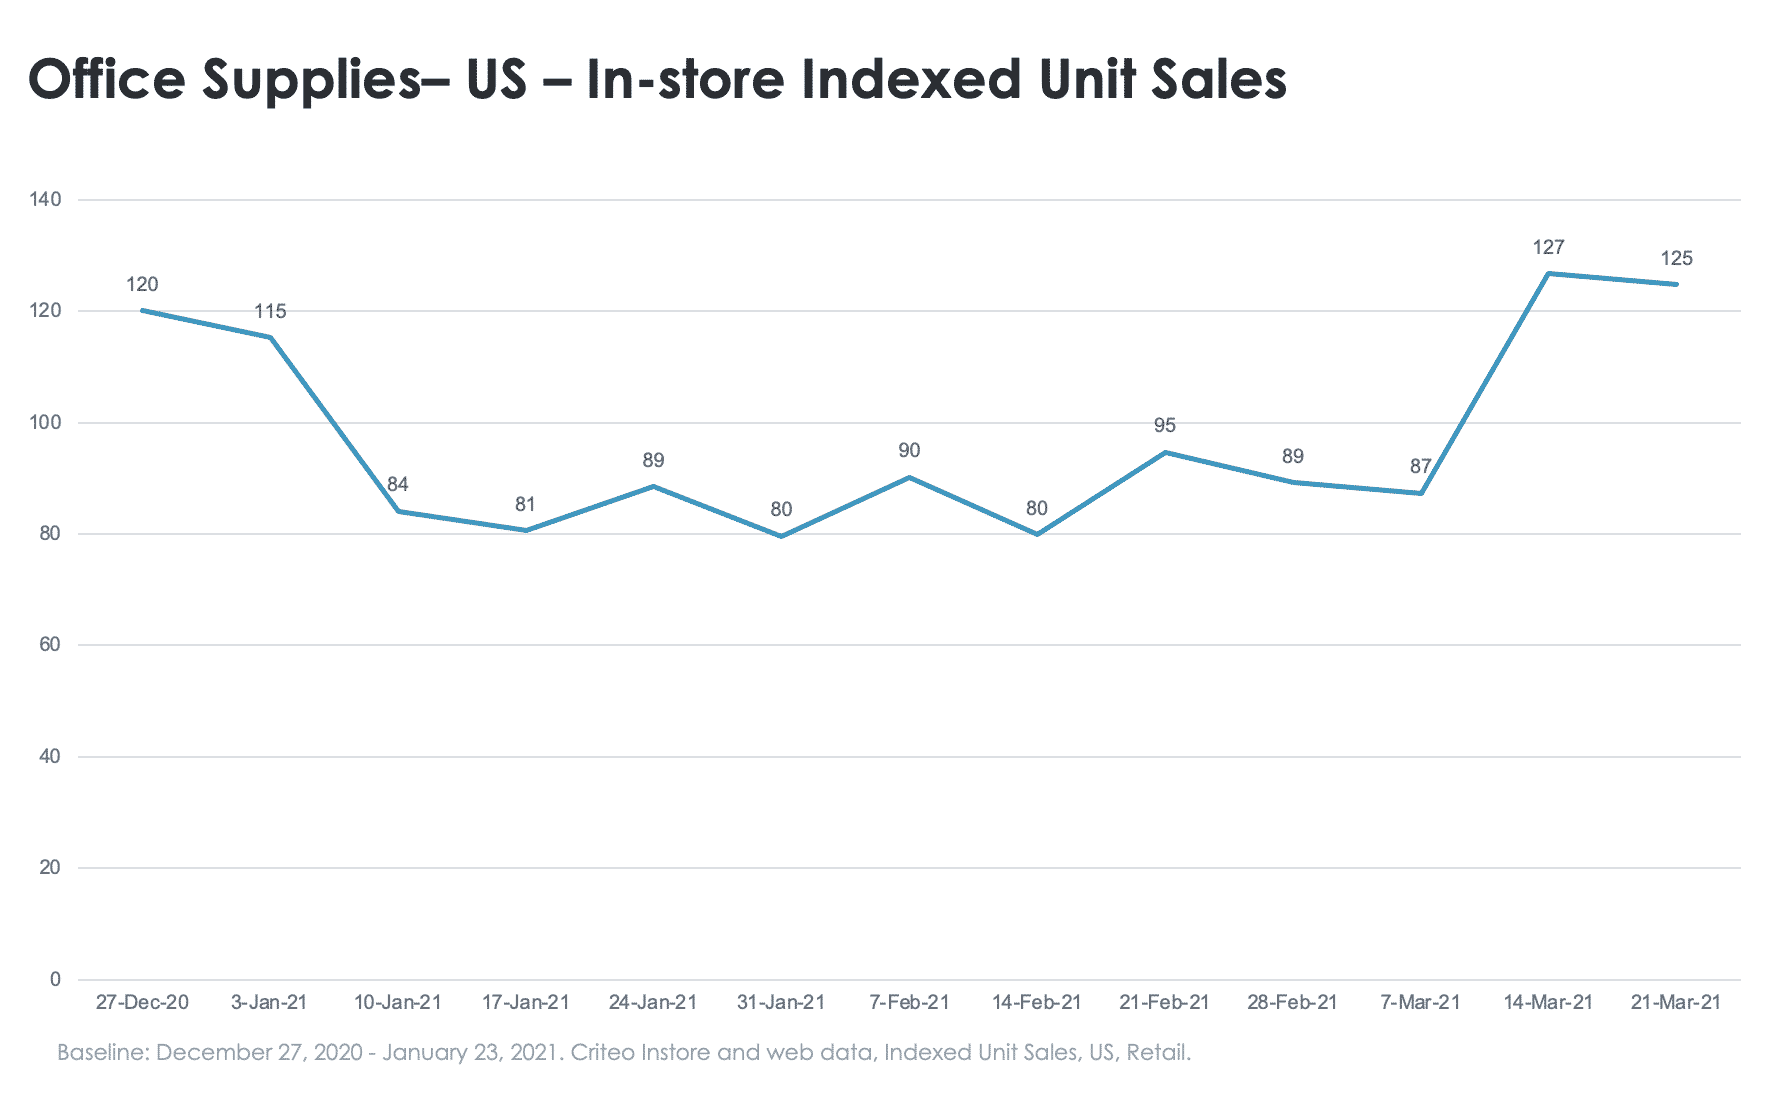 Hardware in-store sales